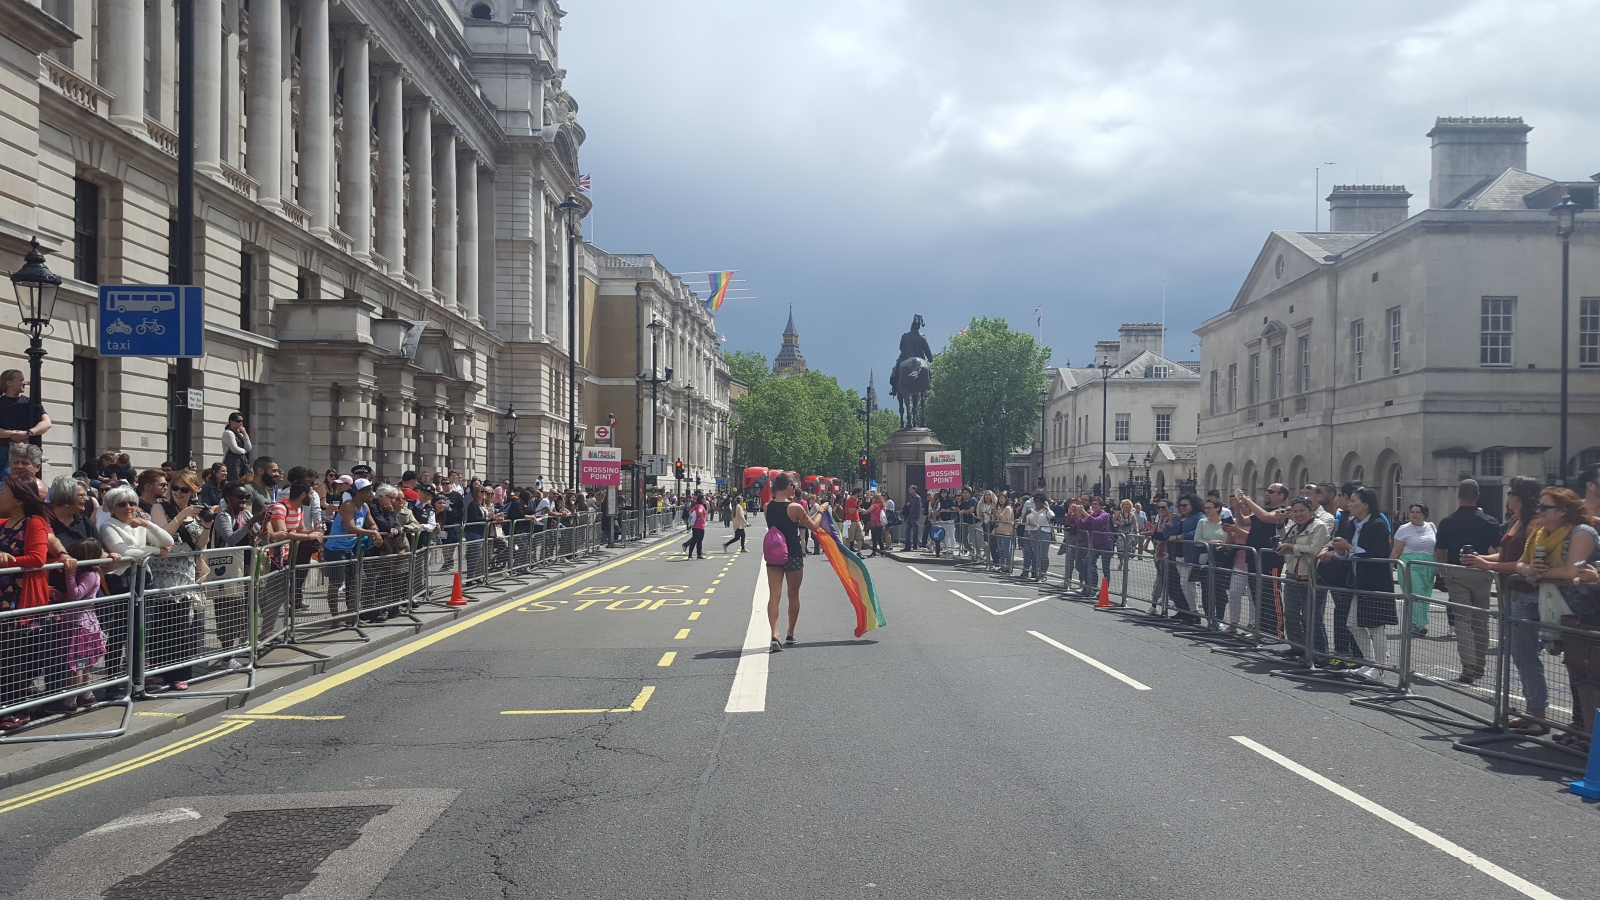 Man with rainbow flag walks down Whitehall